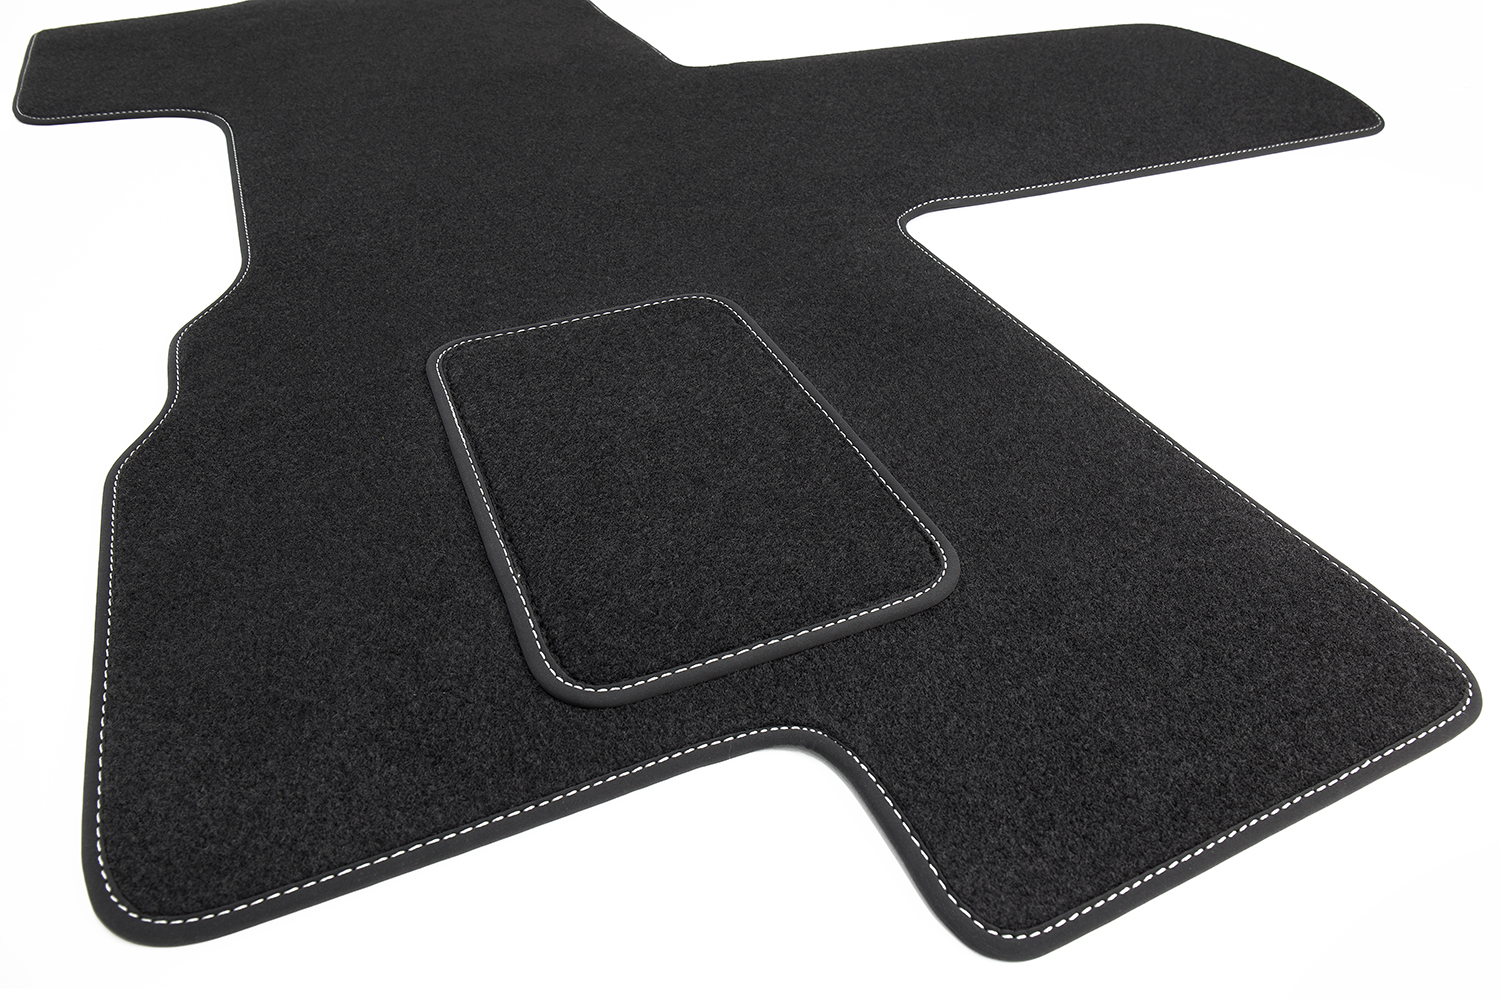 Truck Floor Mats >> Exclusive Truck Floor Mats Fits For Peugeot Boxer 2 Ii Typ 250 From